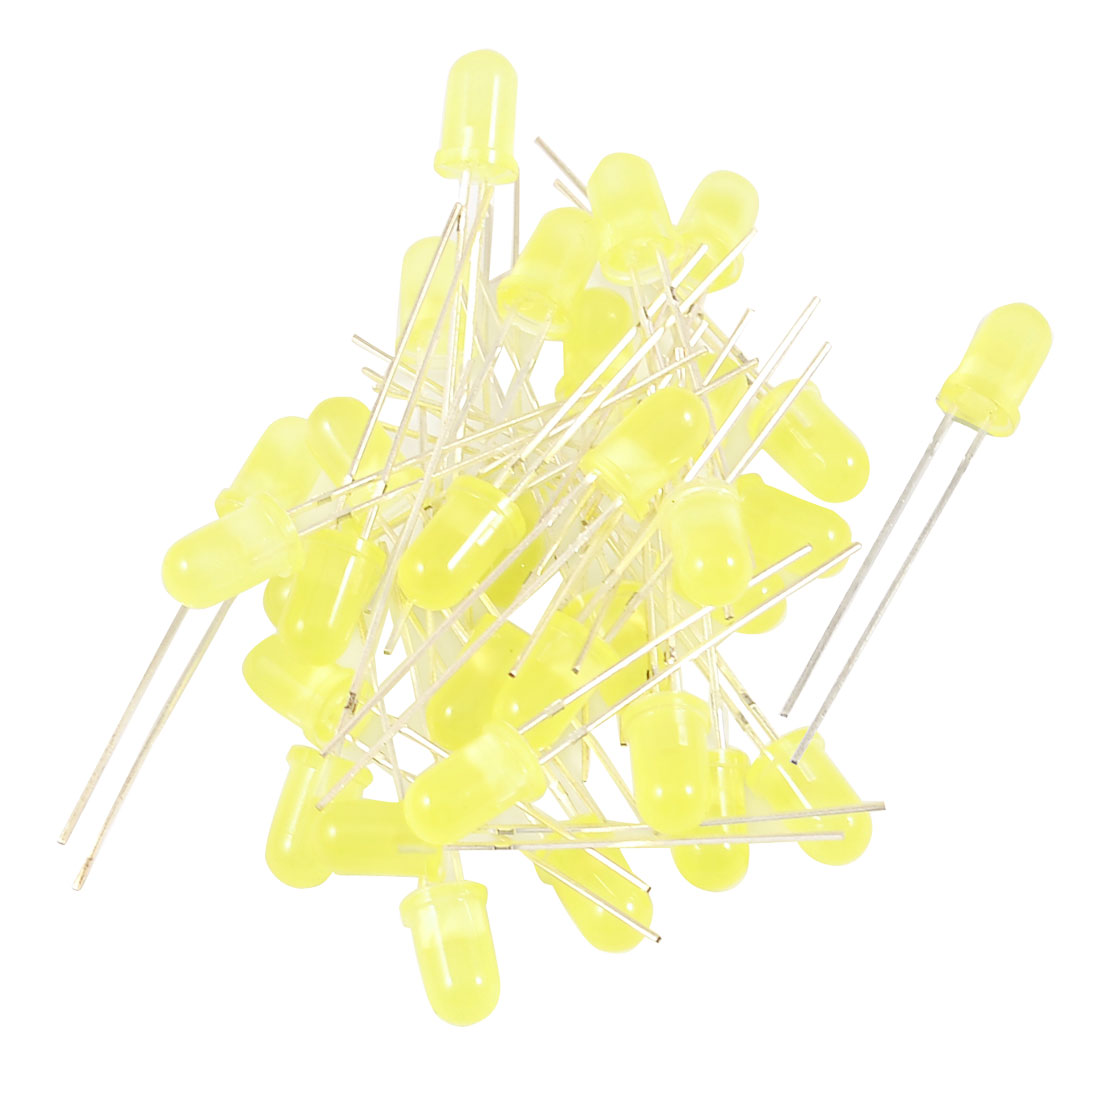 30 Pieces 5mm 2 Terminals Round Head Superbright Yellow LED Light Diodes